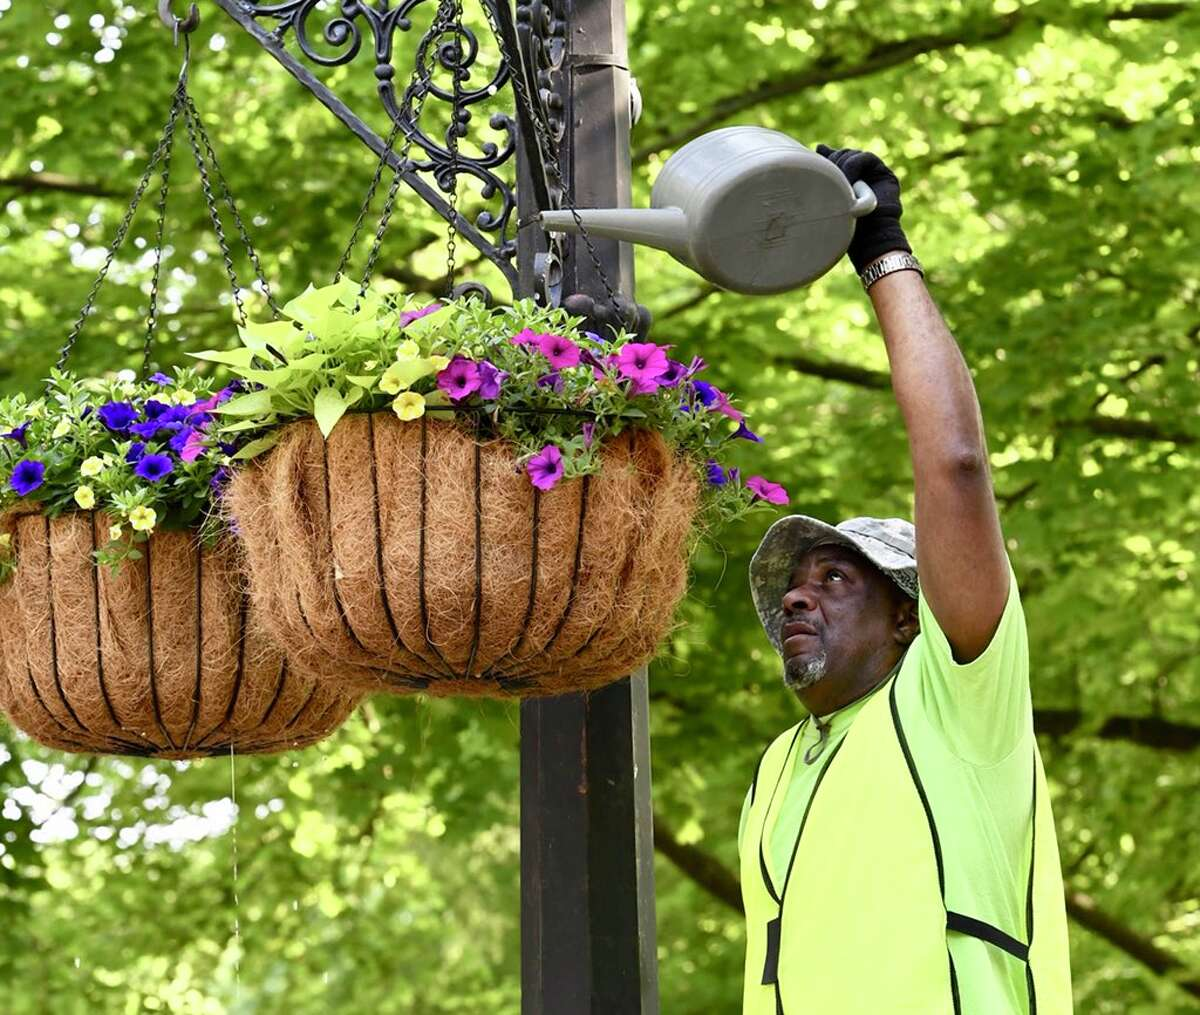 John Fenner waters planters in Washington Park in Troy on Tuesday, May 29, 2018. (Skip Dickstein/Times Union)